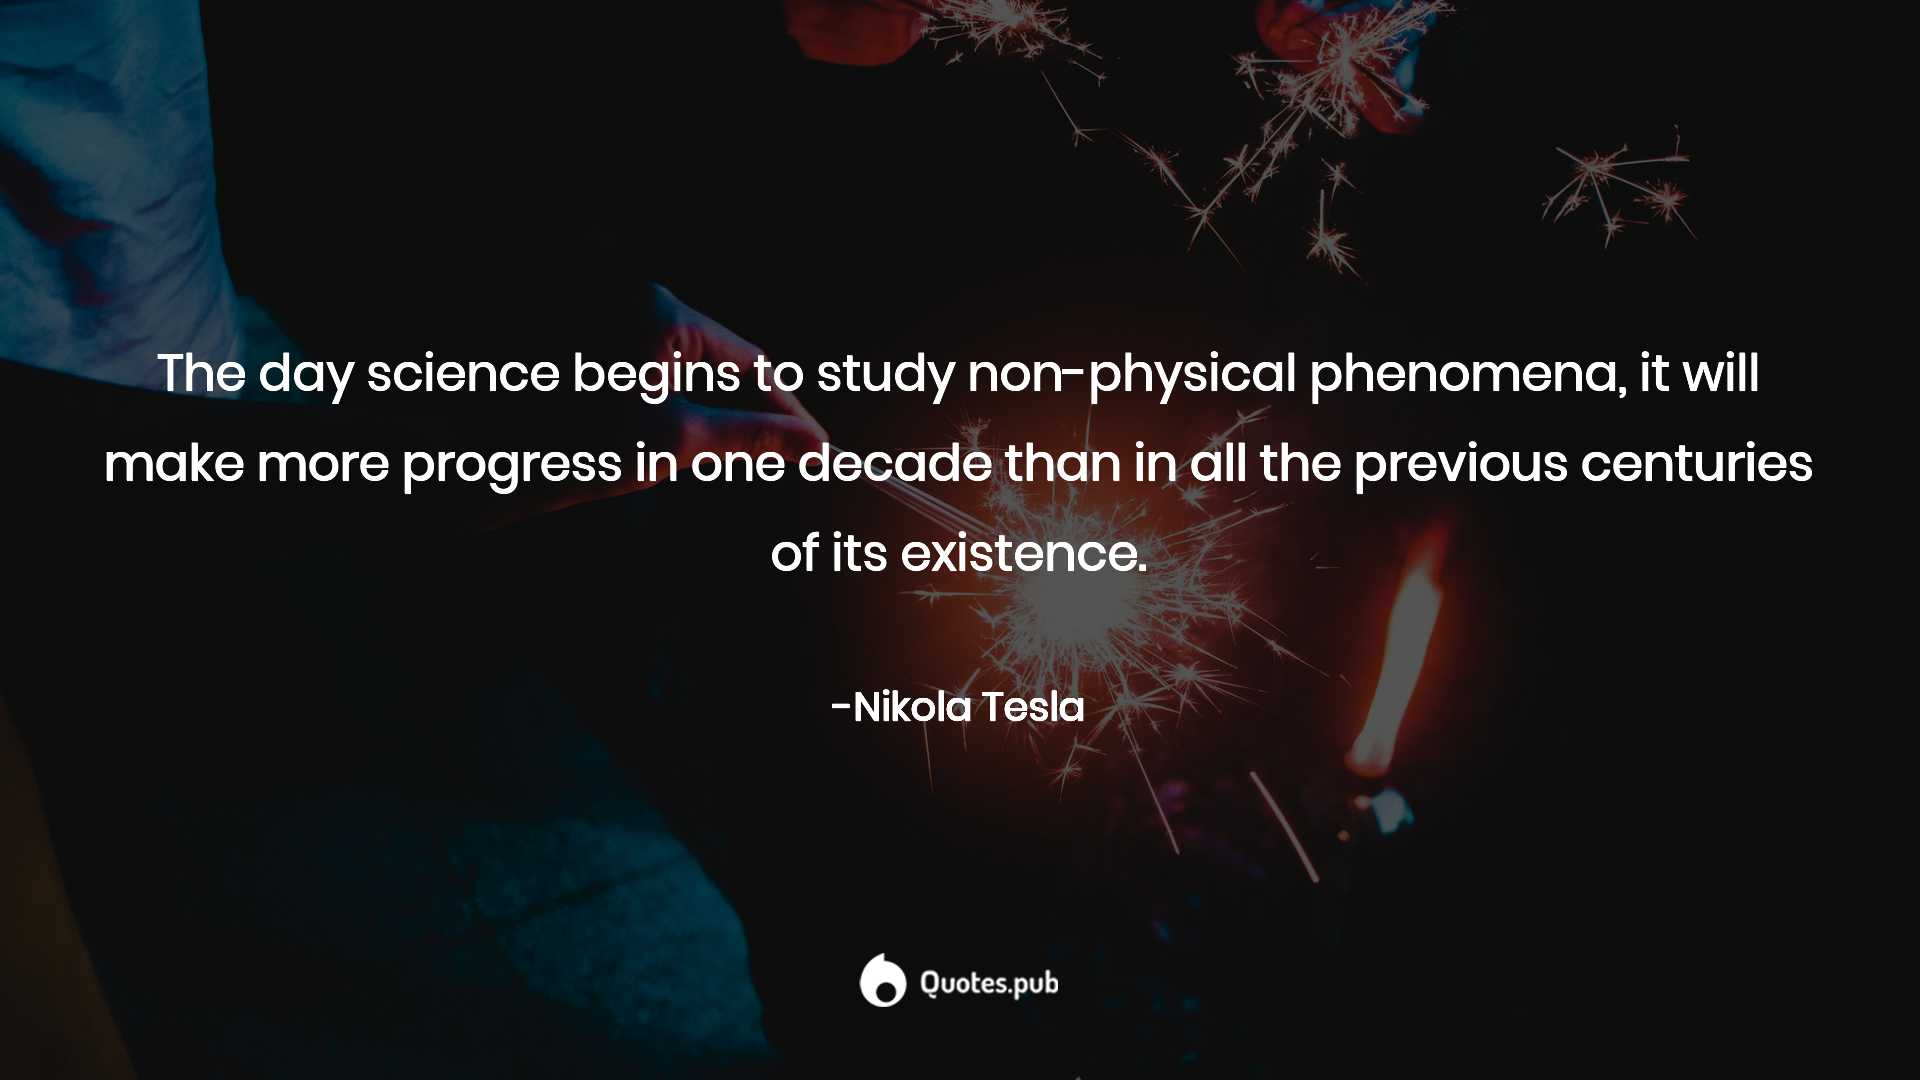 the day science begins to study non phy nikola tesla quotes pub